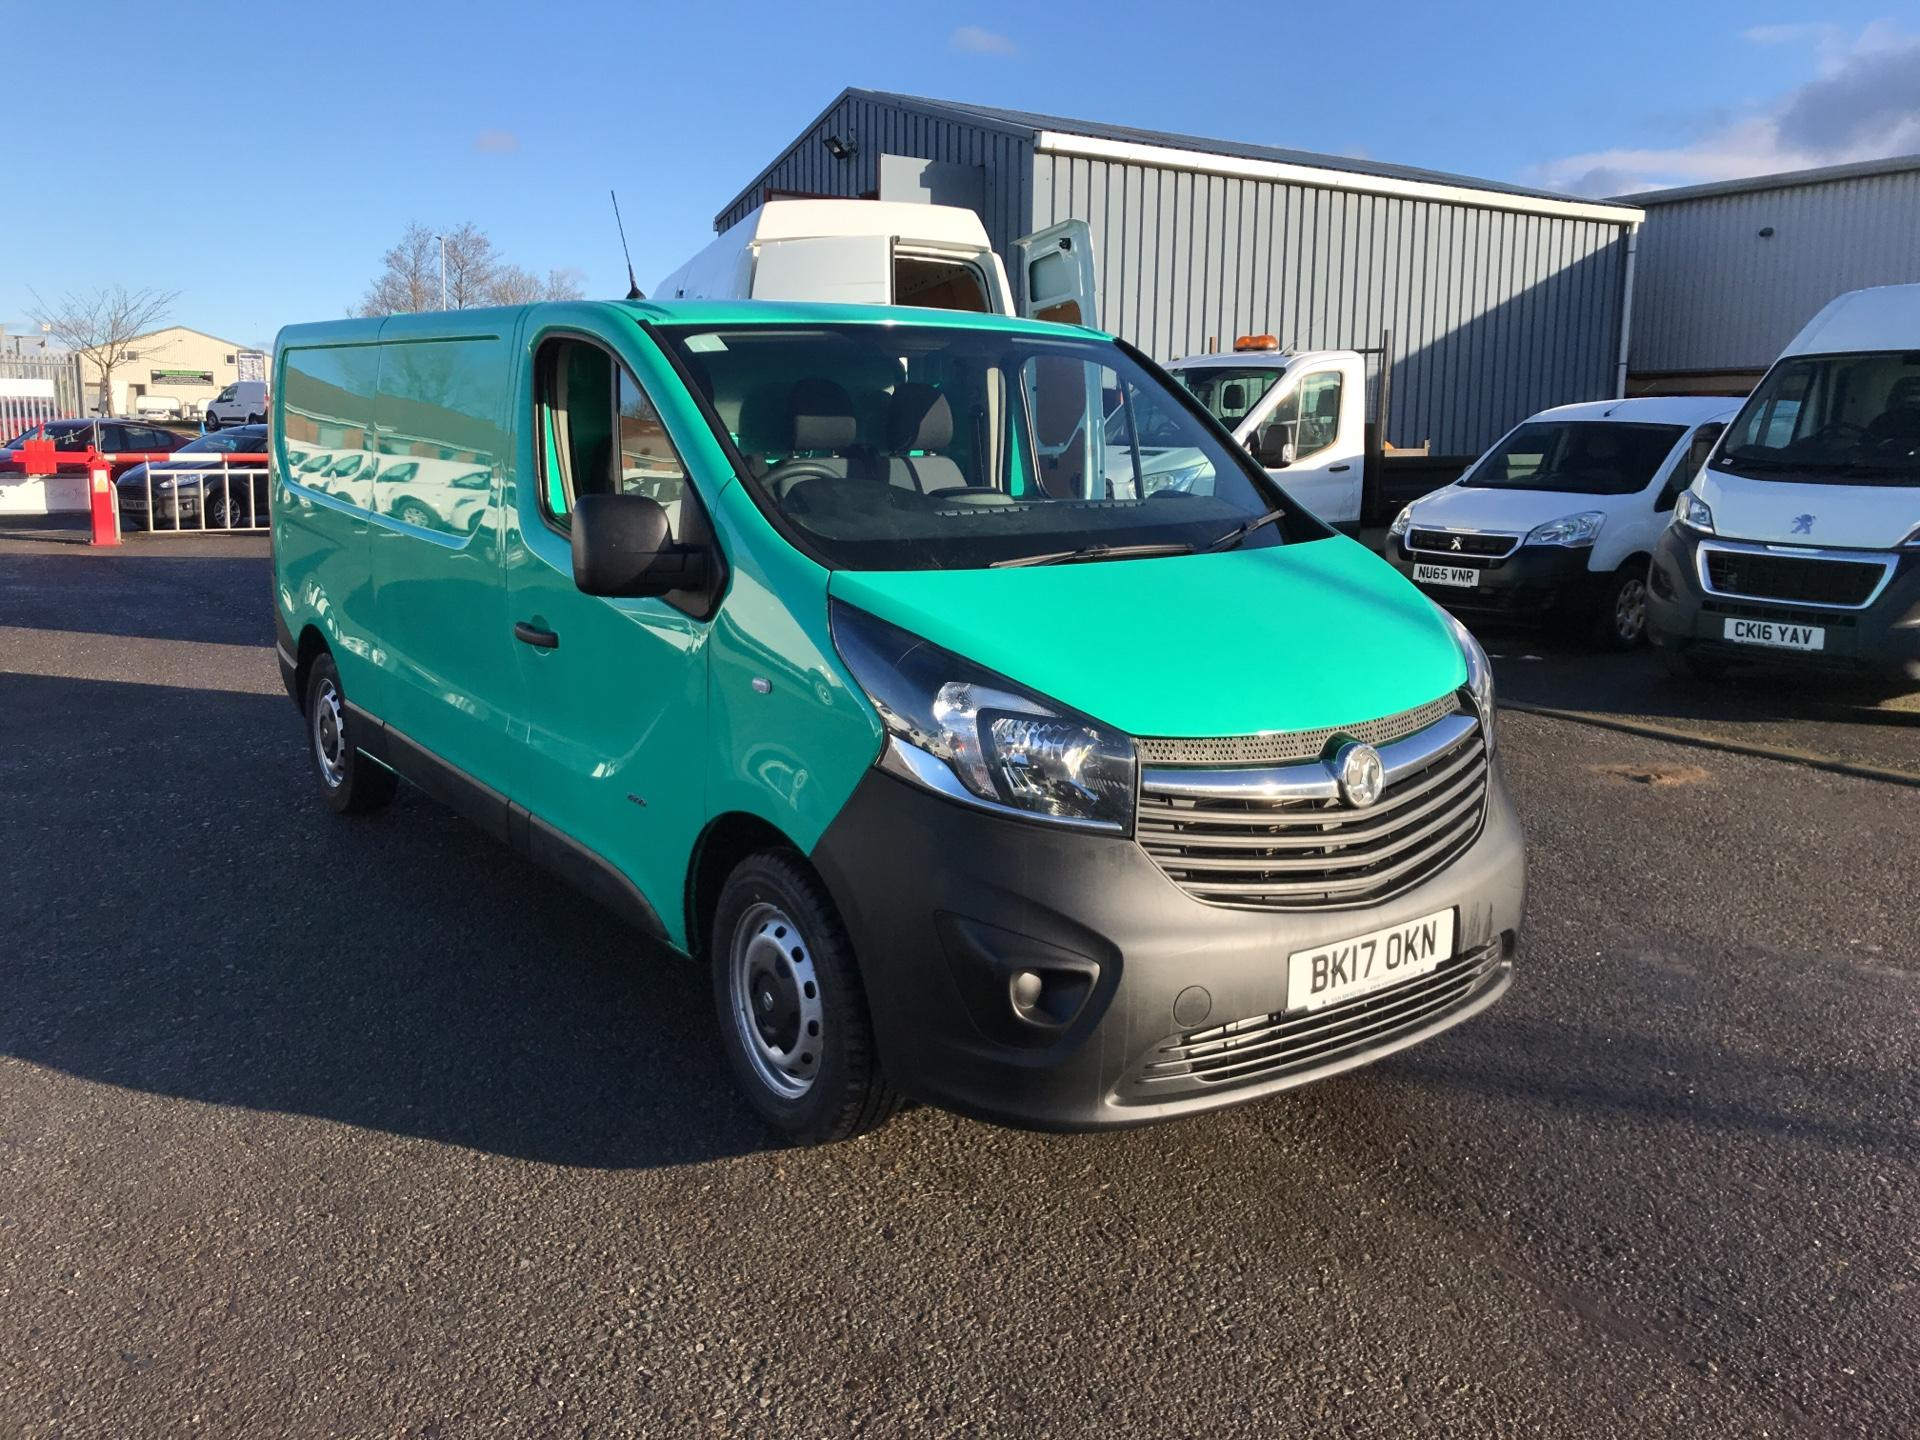 2017 Vauxhall Vivaro L2 H1 2900 1.6CDTI 95PS EURO 6 *VALUE RANGE VEHICLE CONDITION REFLECTED IN PRICE* (BK17OKN)